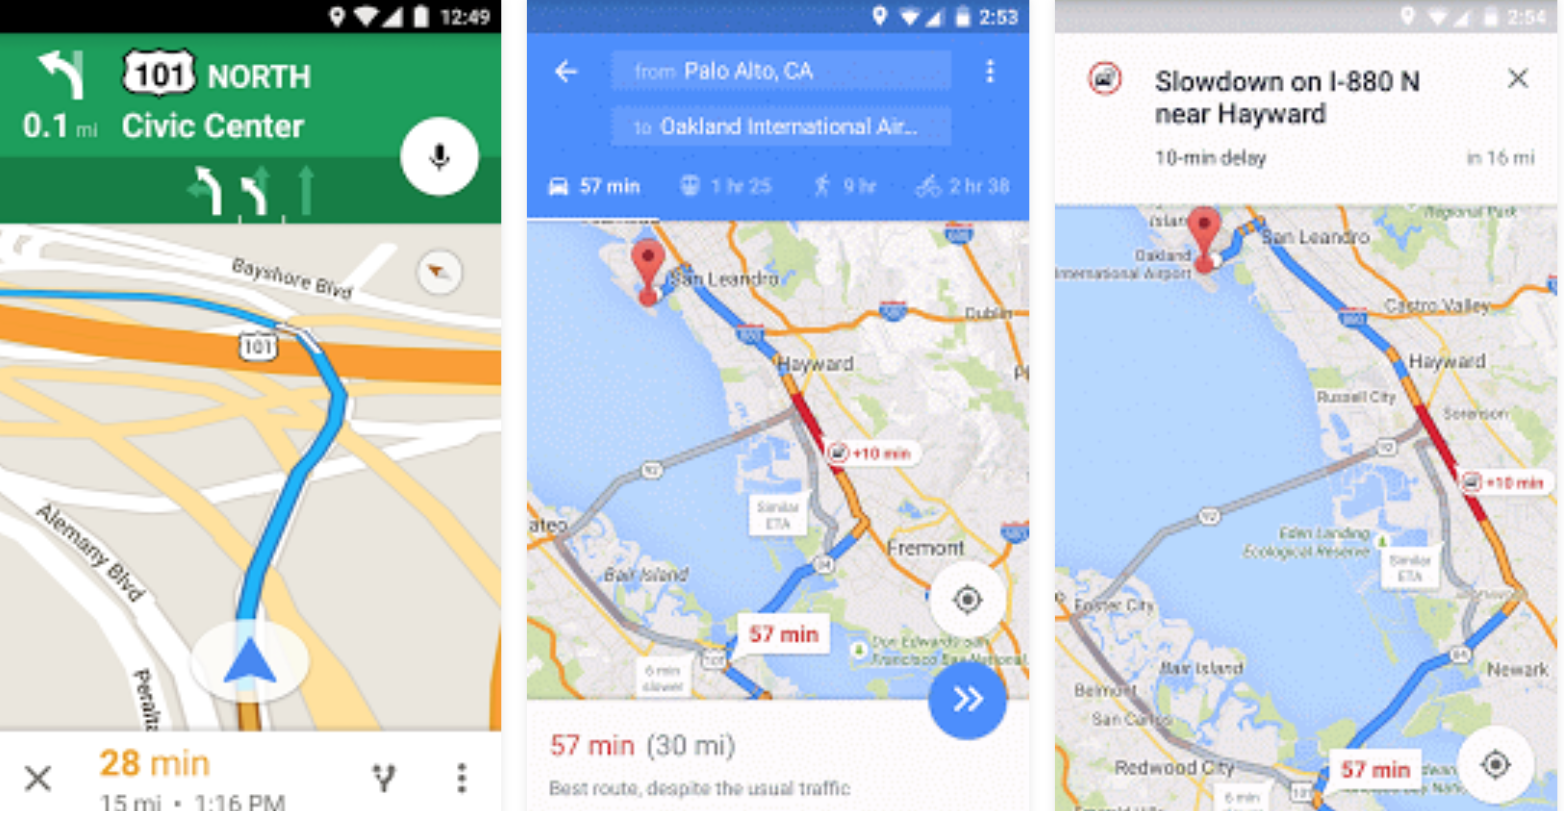 Google Maps Will Now Figure Out Your Destination Without Asking